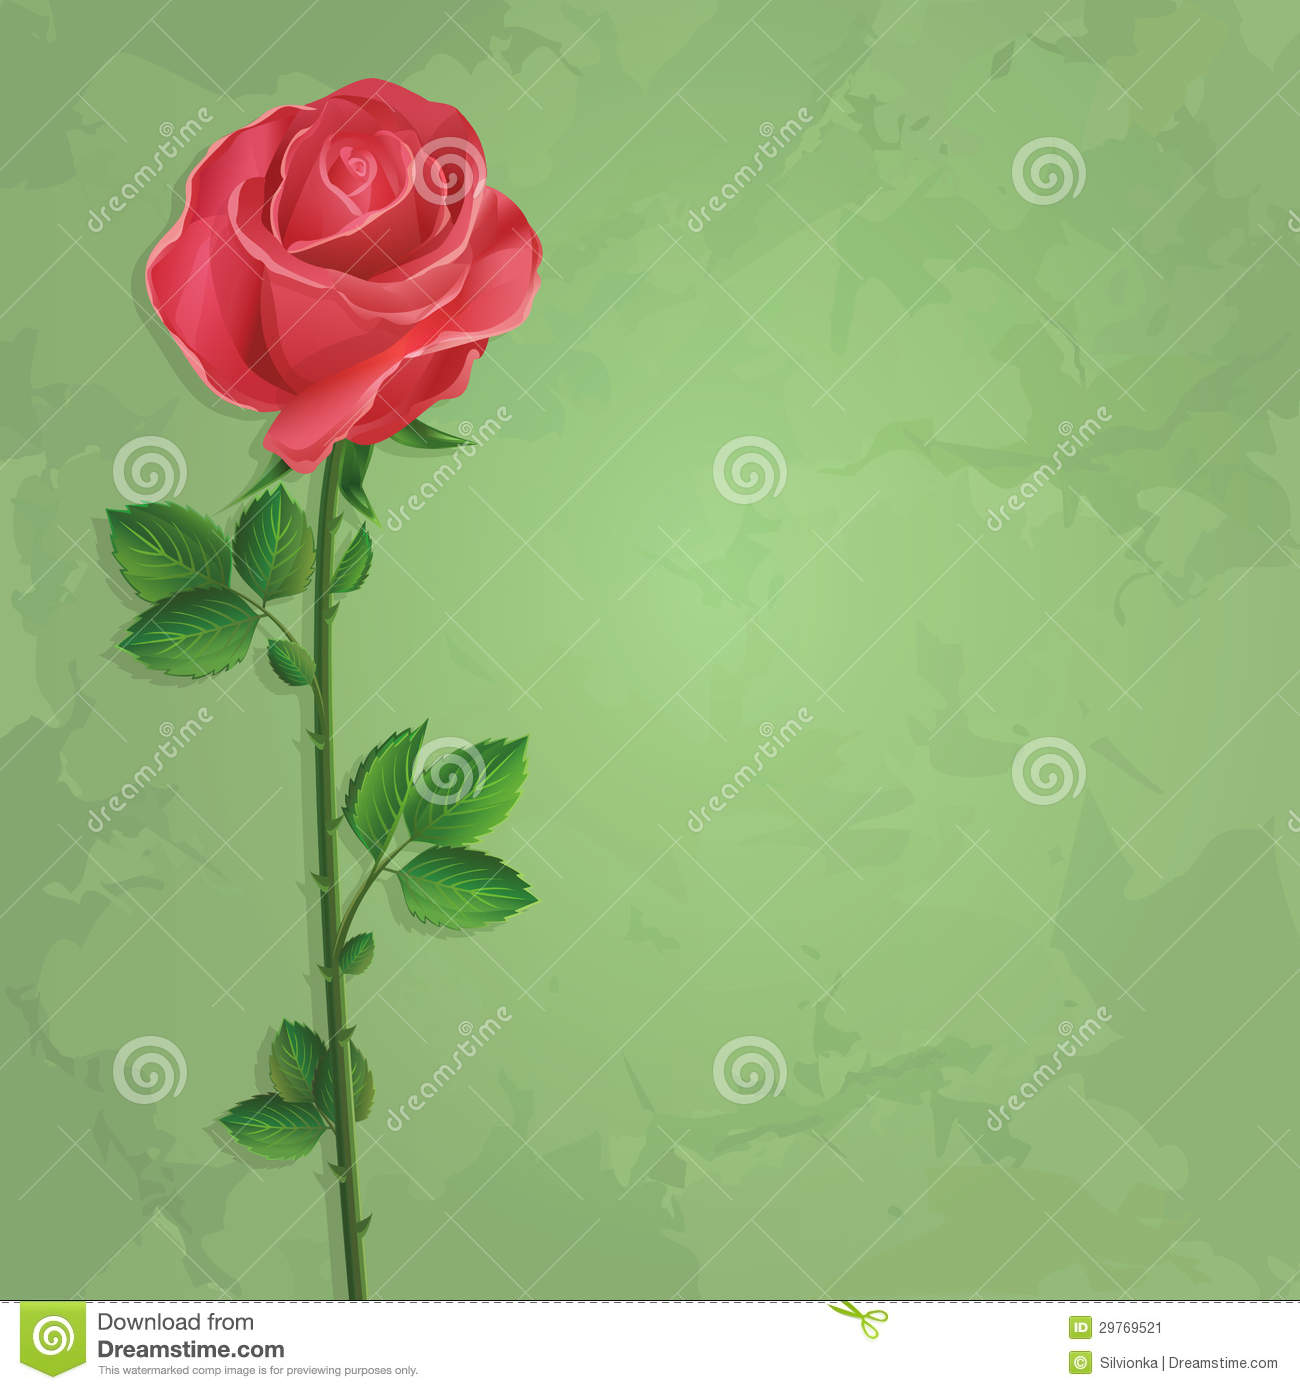 rose wallpaper cards instant - photo #5